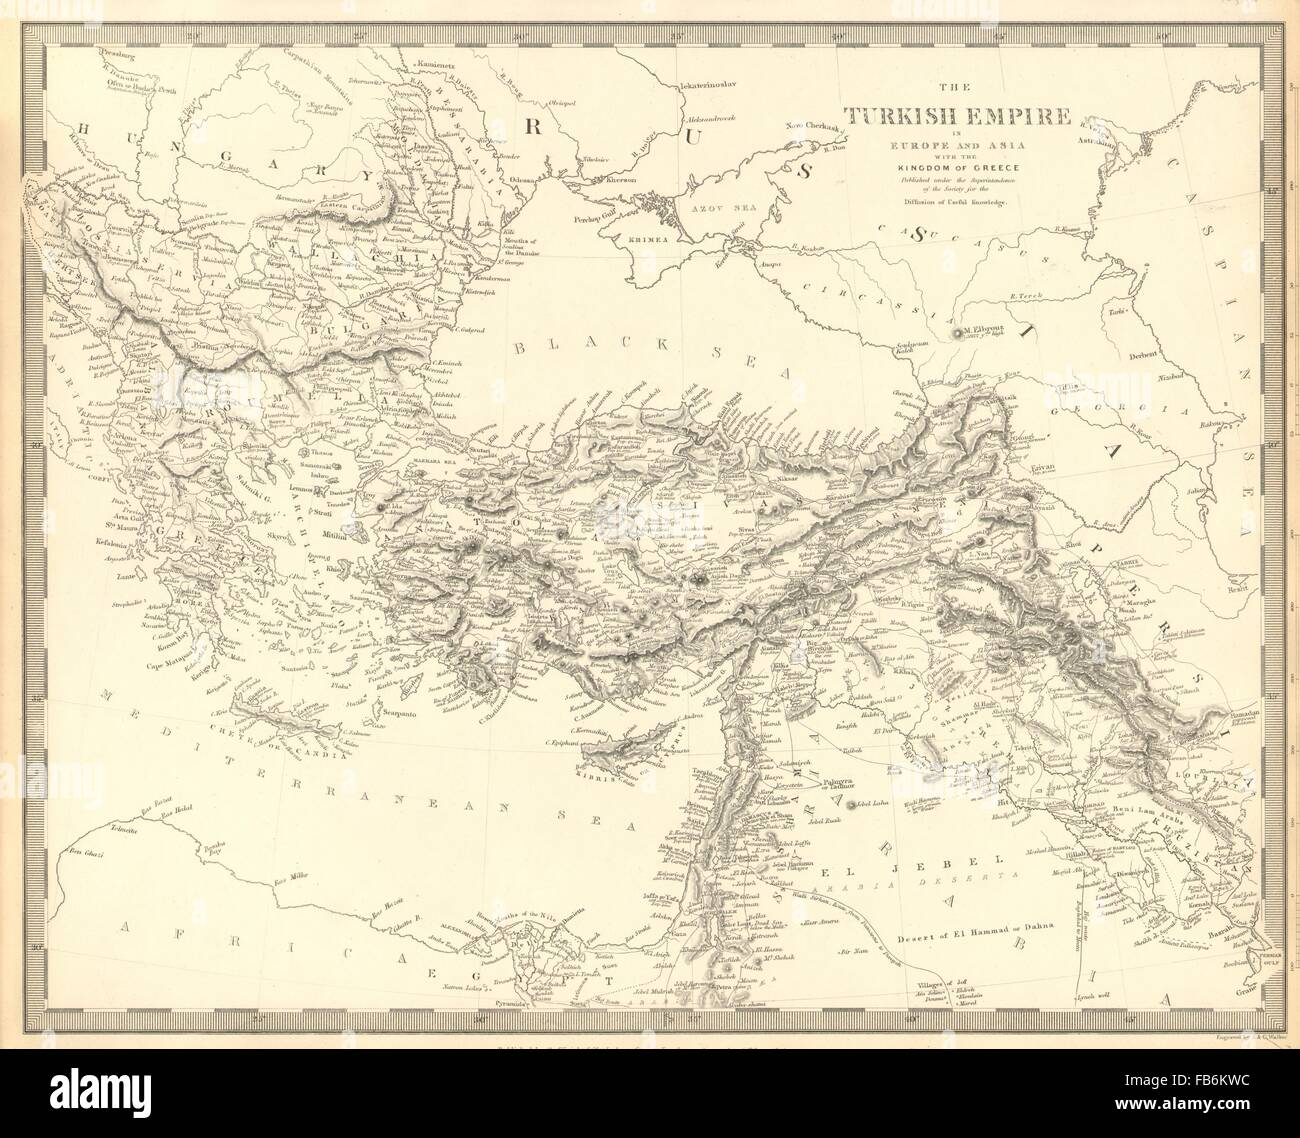 Ottoman Empire In Europe And Asia With The Kingdom Of Greece Sduk